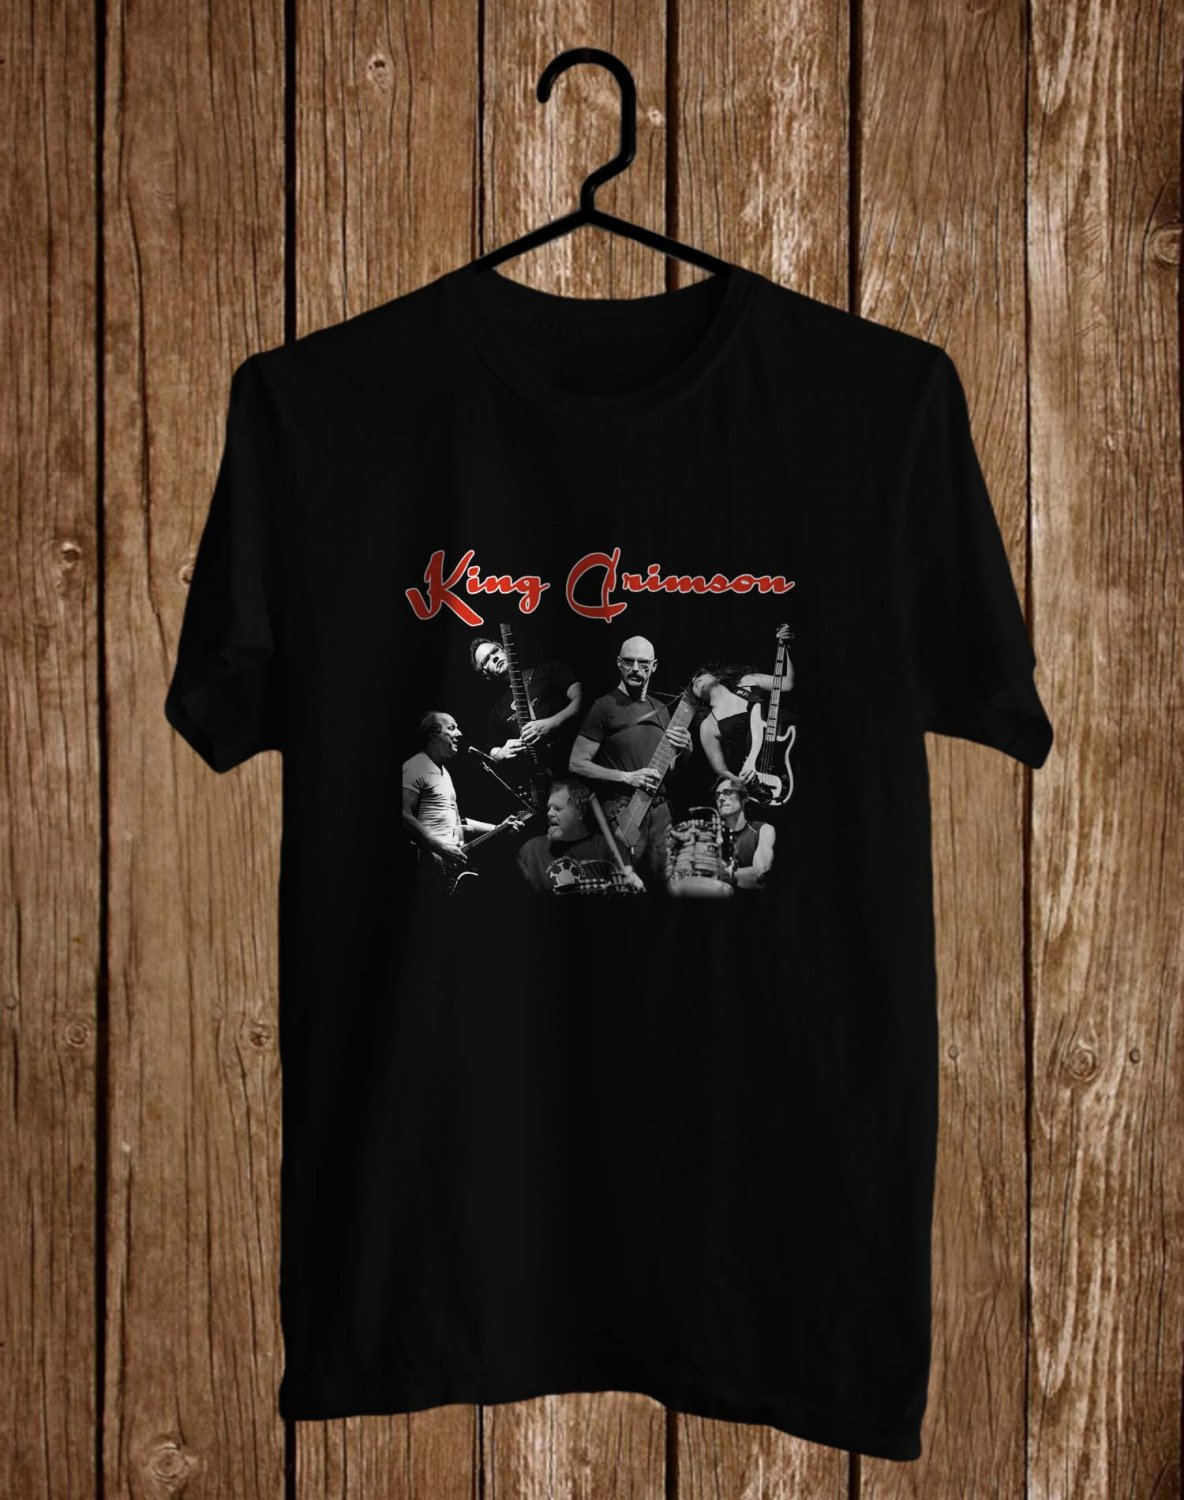 King Crimson Radial Action tour 2017 Logo Black Tee's  Front Side by Complexart c2